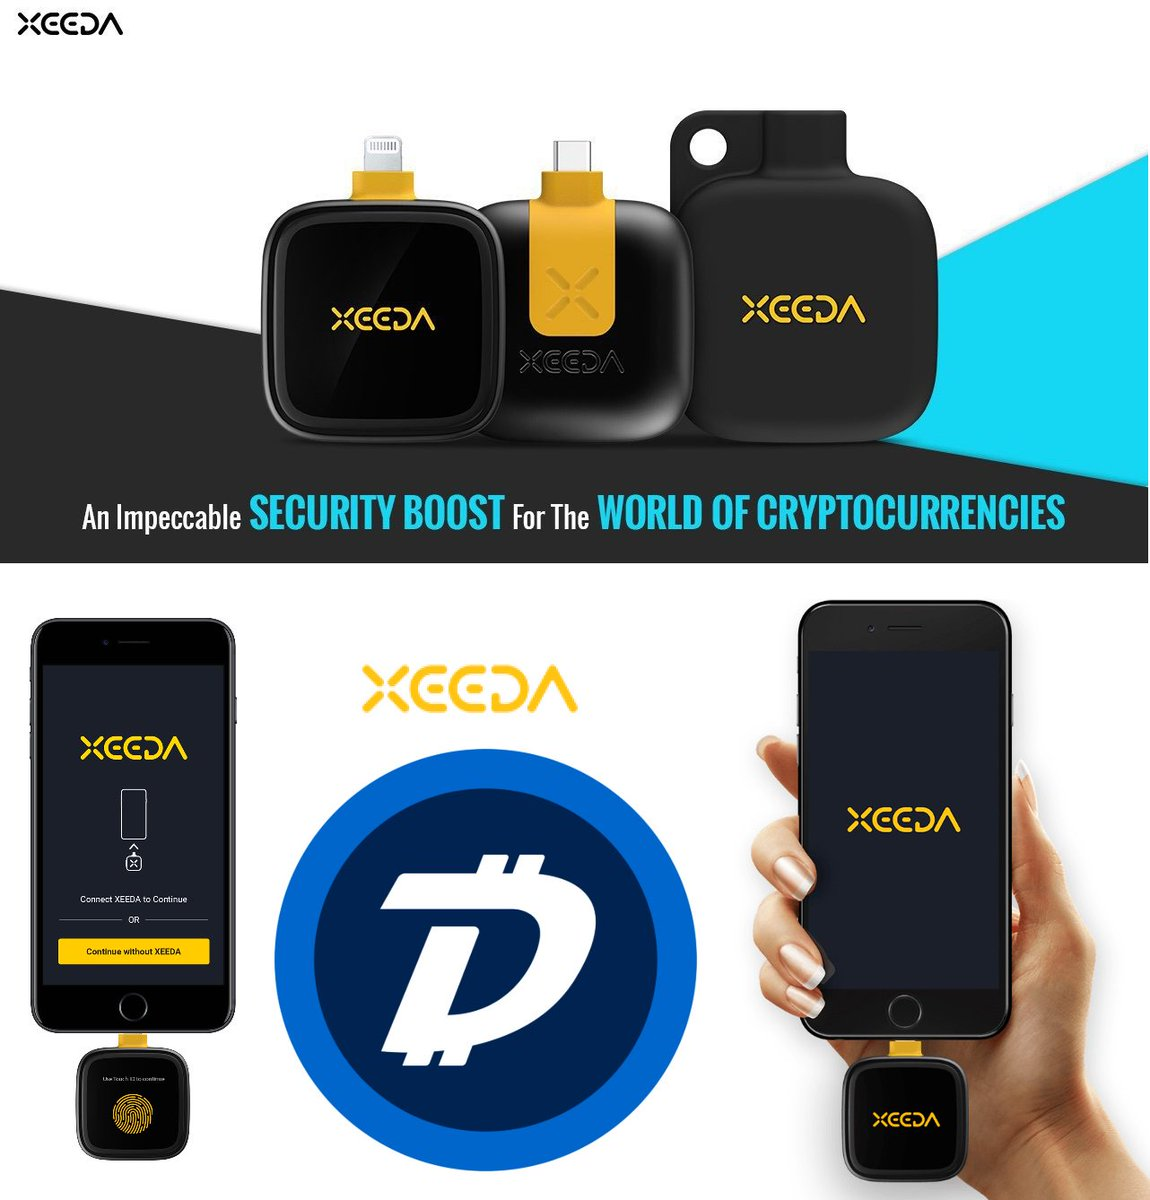 We are excited to have #DigiByte integrated into the @xeedaofficial app and hardware wallet on their upcoming product expected to launch in early 2019!   https://www. dgbat.org/2018/11/08/dig ibyte-to-be-integrated-with-xeeda-hardware/ &nbsp; … <br>http://pic.twitter.com/JlINtI3HgX